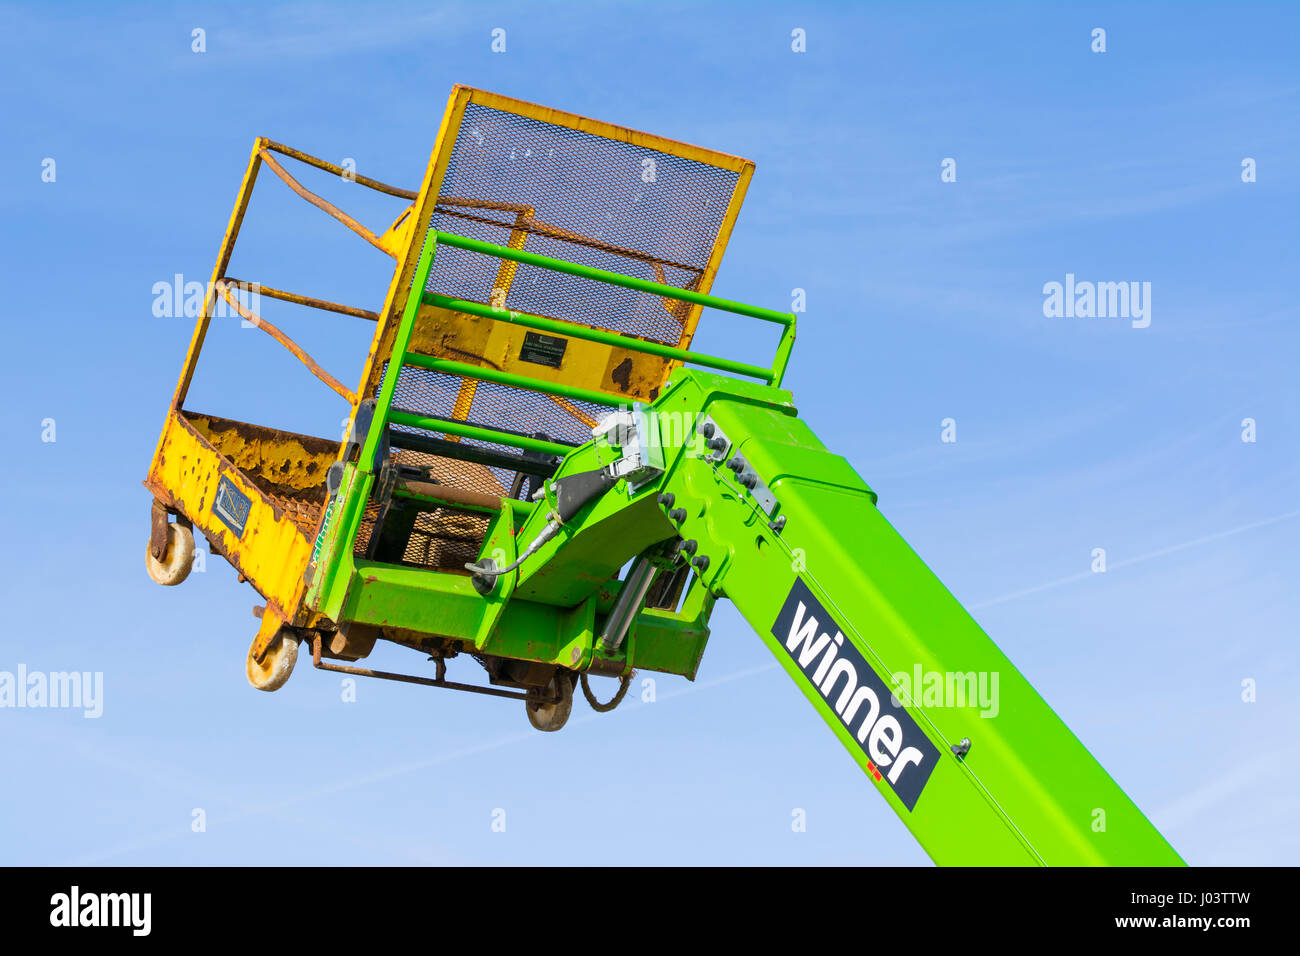 Empty stationary lifting arm of a Winner Access cherry picker construction vehicle. - Stock Image